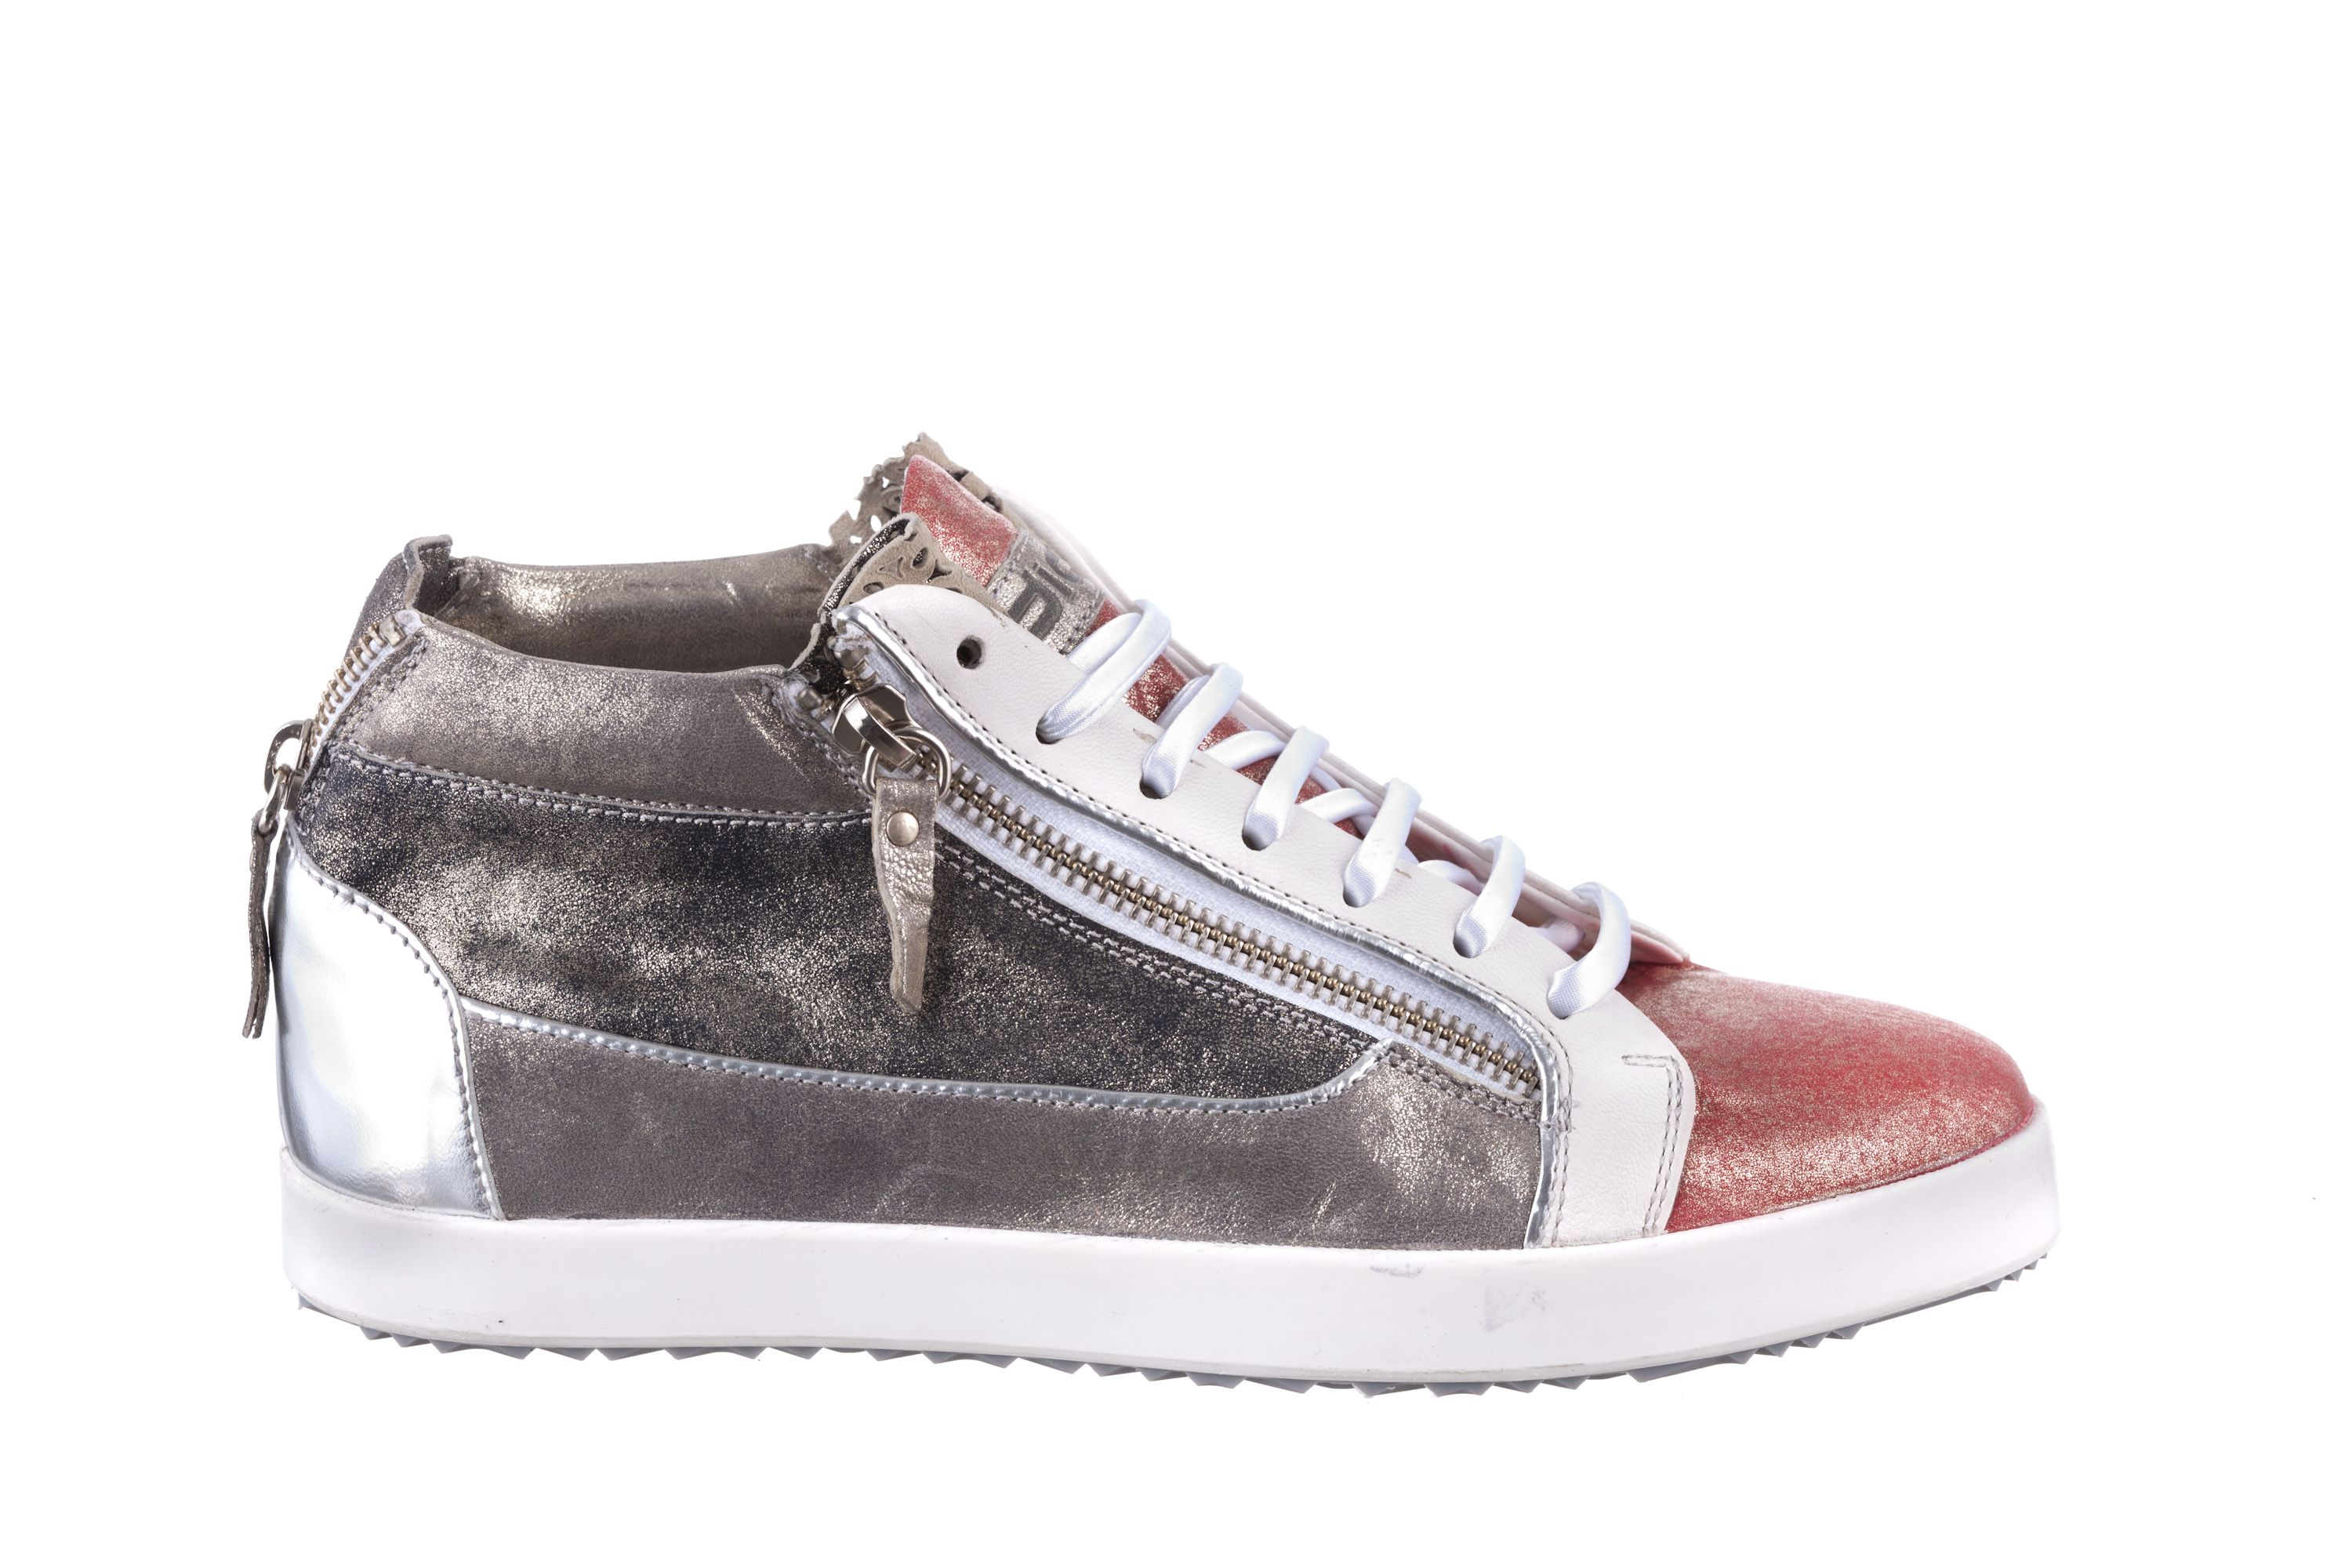 e3dee82c1e9f SNEAKER METALLIC BRUSHED LEATHER WITH ZIP AND LACES  Corvari sneakers  ss2014 shoesofthemonth